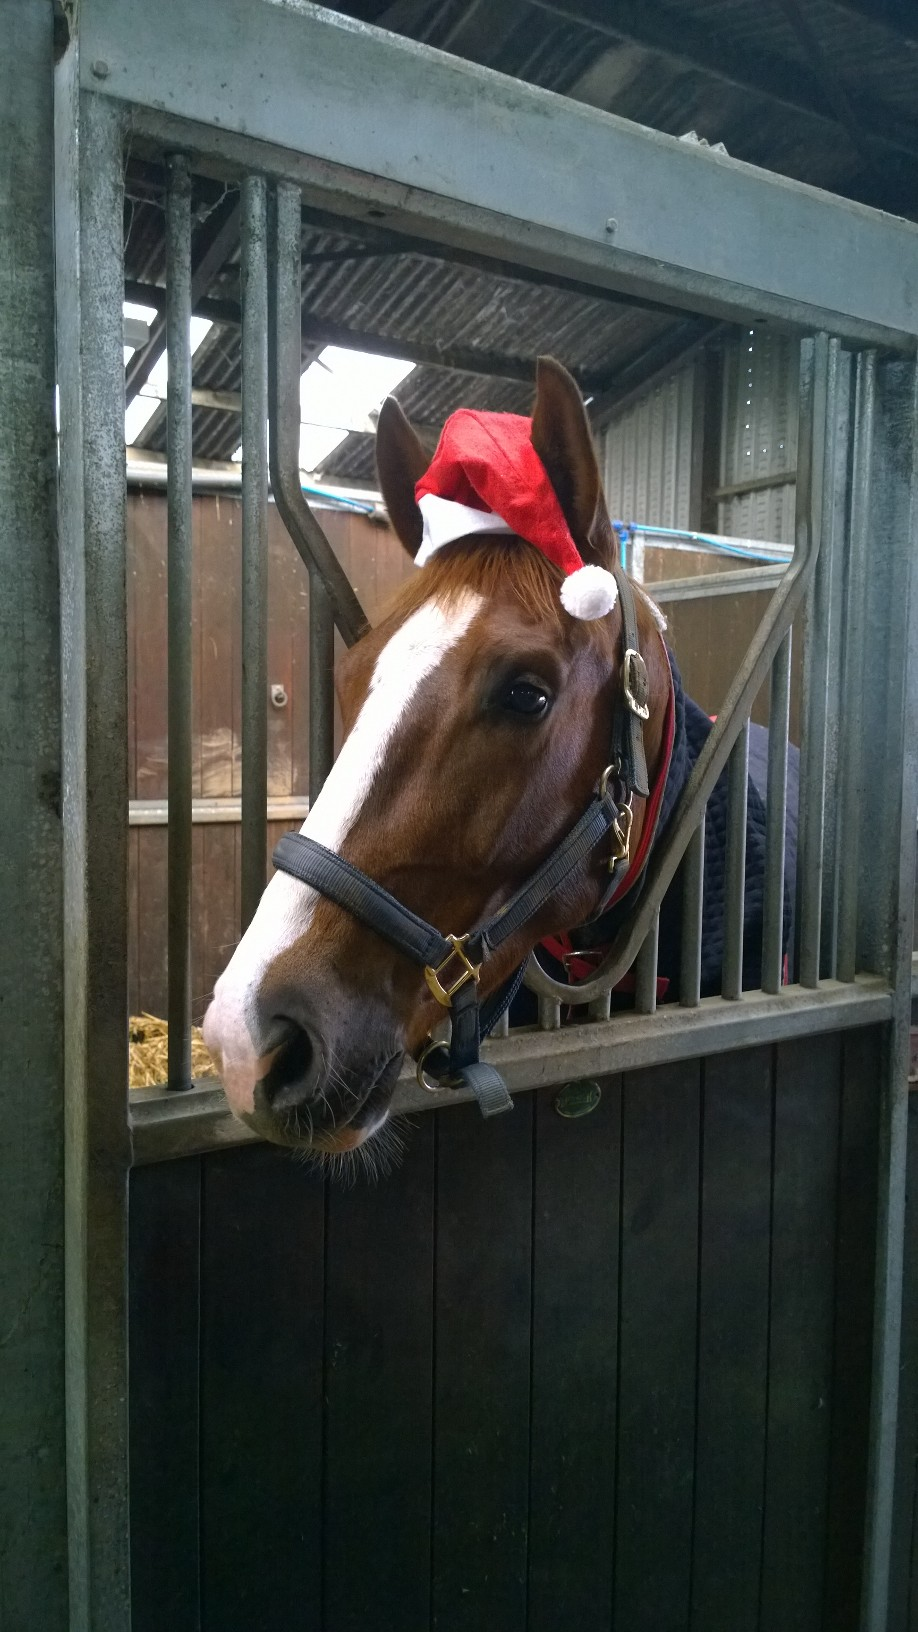 Nutwood Mimic getting ready for Christmas